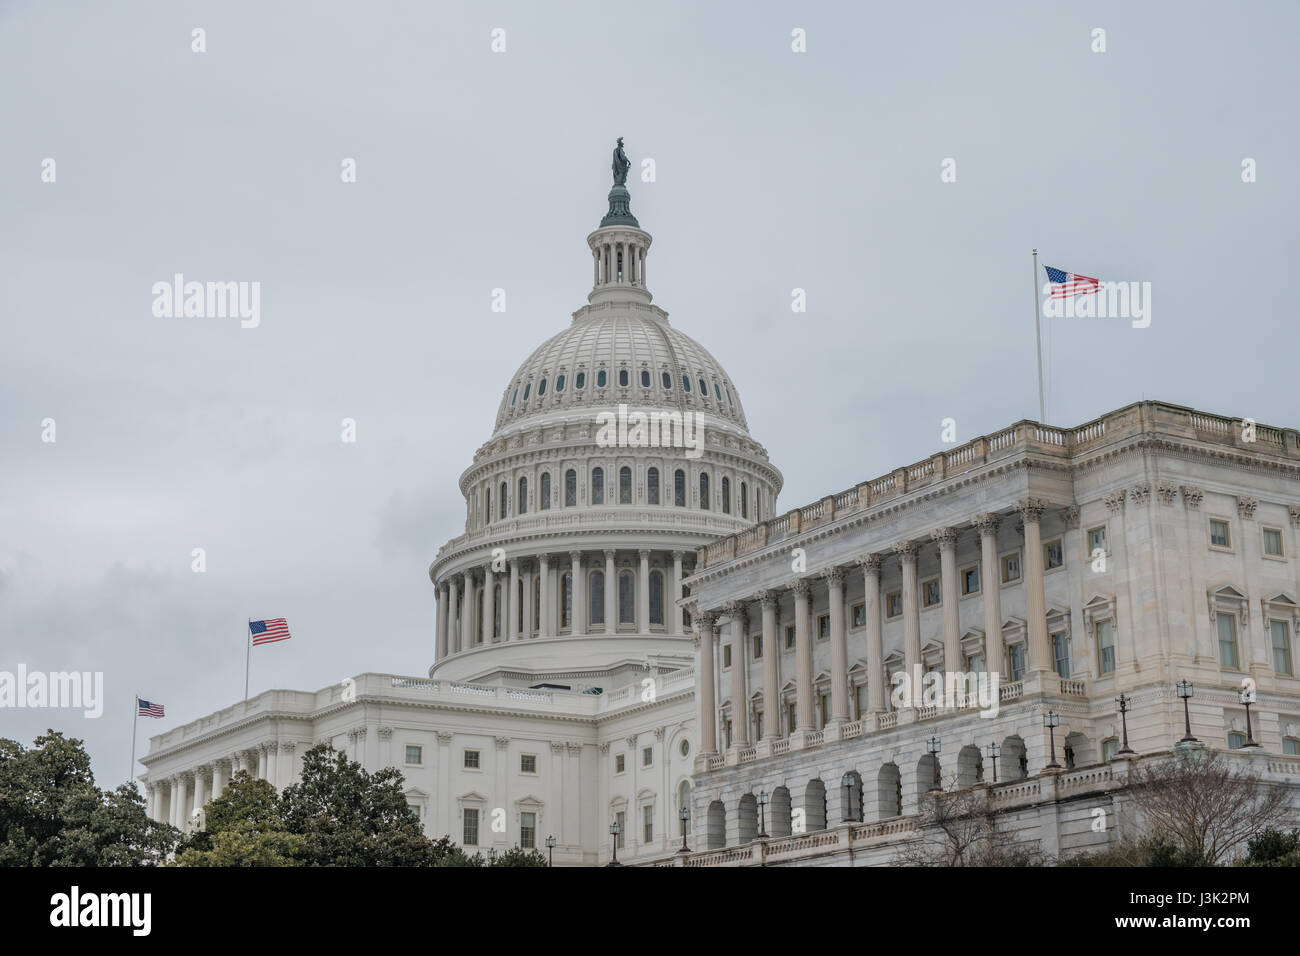 U.S. Capitol Building with Three American Flags - Stock Image